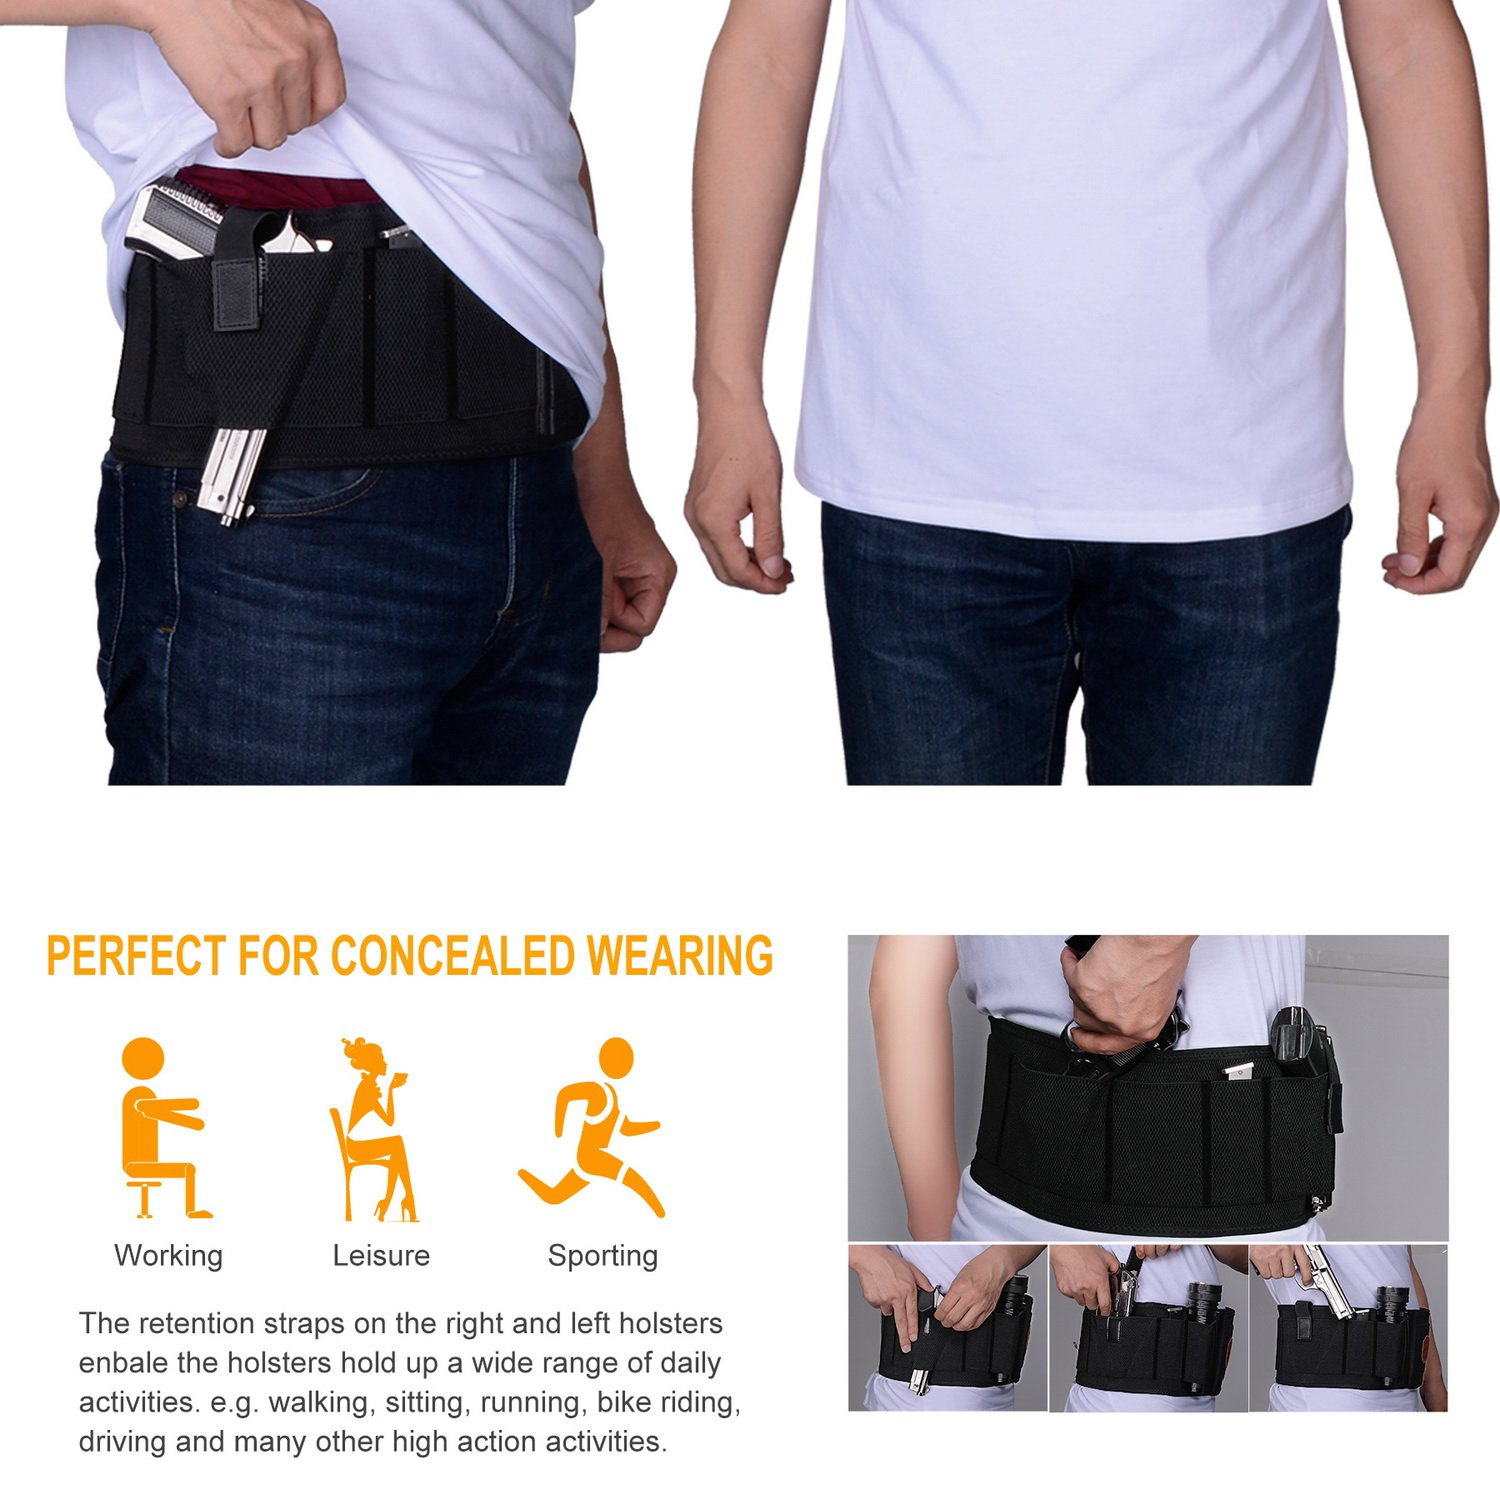 Fullmosa Concealed Carry Holster, Mi Belly Band Holster for Handgun, Elastic Hand Gun Holder Waist Holsters Pistols Revolvers IWB Holster with Mag Pouches, Back Draw -B-L